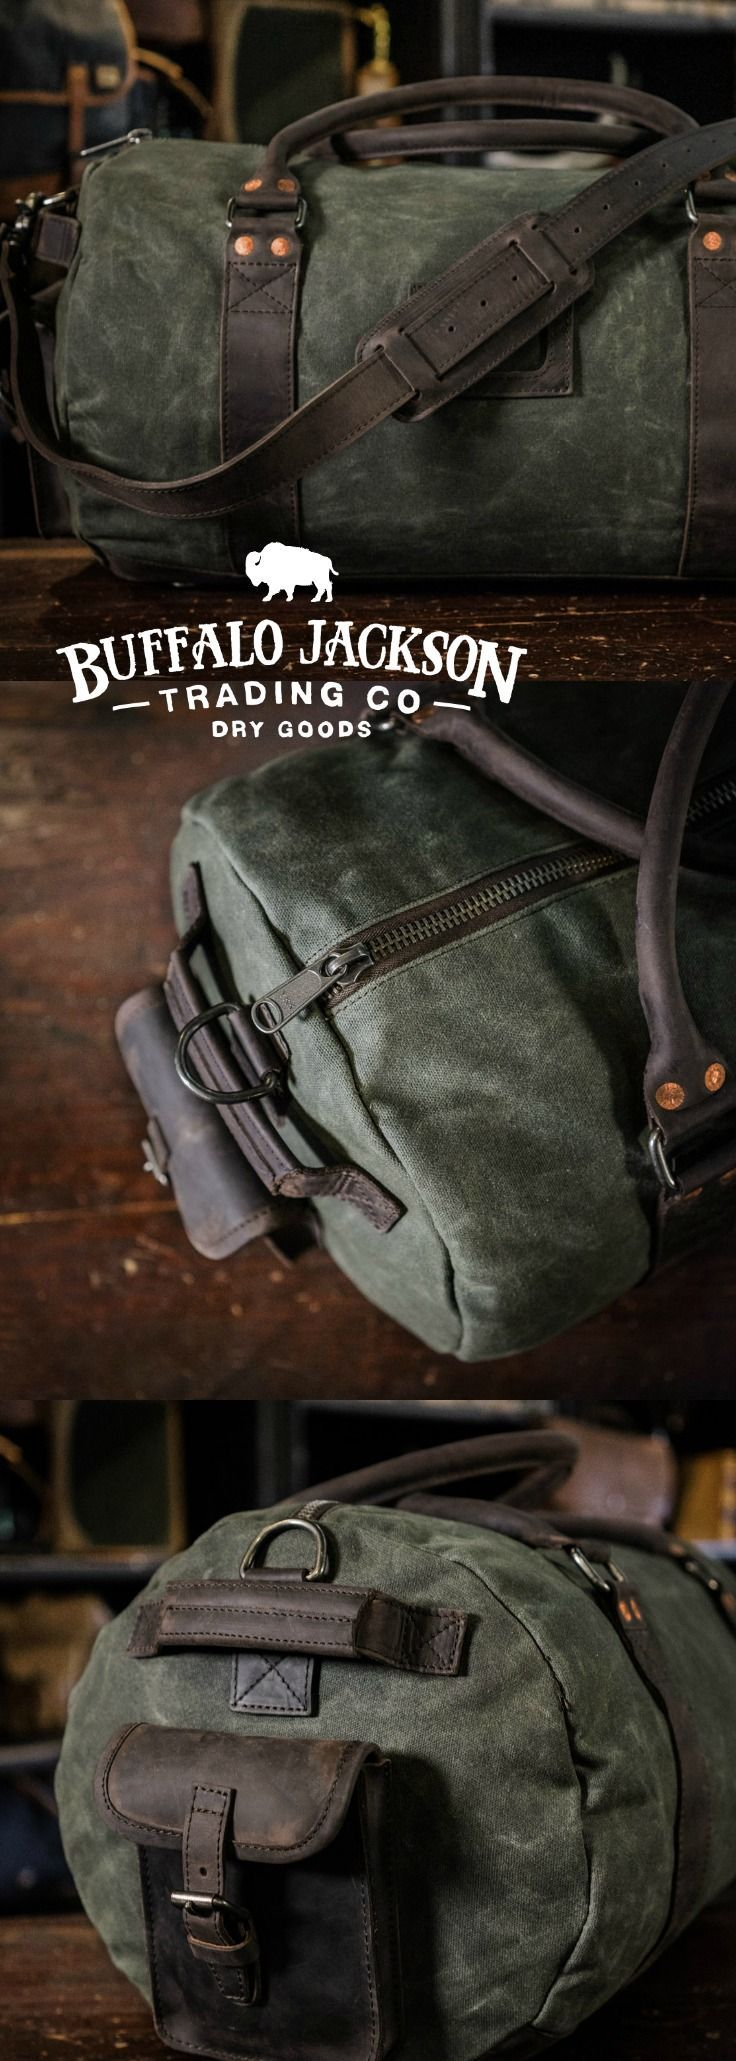 Crafted of waxed canvas and full grain leather with a distressed vintage finish, this duffle / duffel bag is constructed with the most durable of canvases, and highest grade leather. Plenty of room for all your work, sport, or travel products.